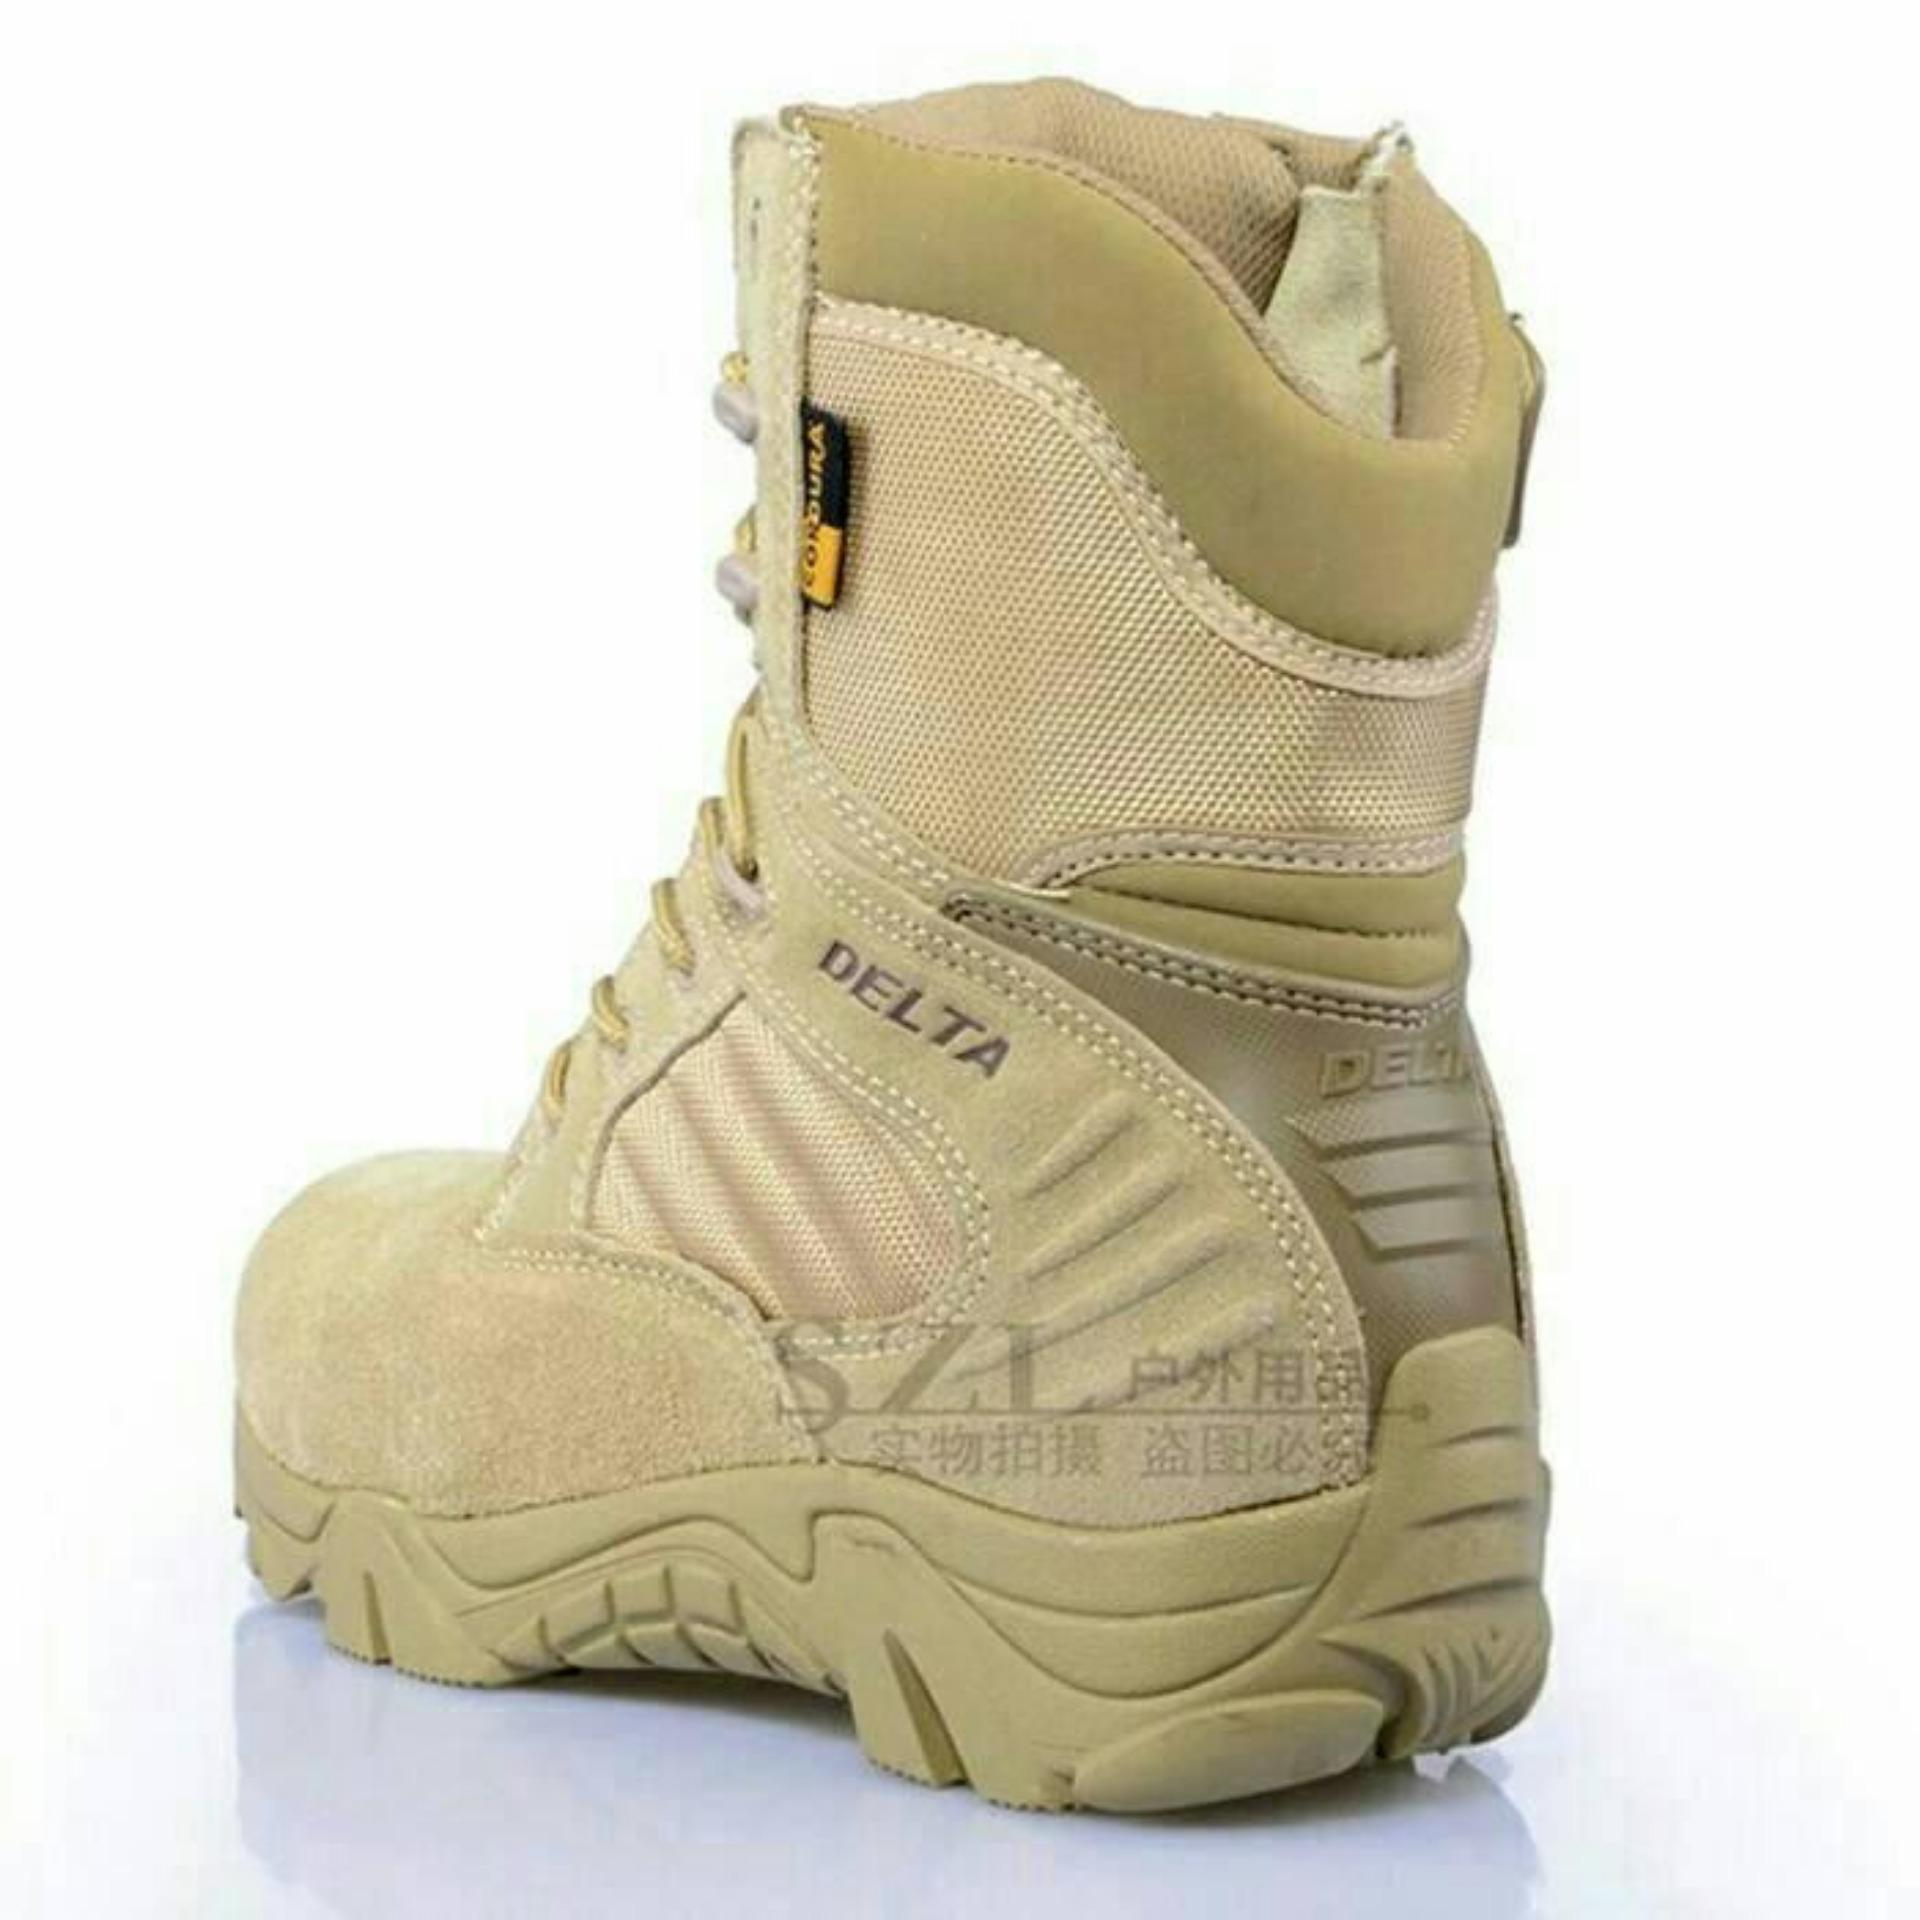 Sepatu Boot Hiking Delta High 8inch Quality Outdoor - Gurun